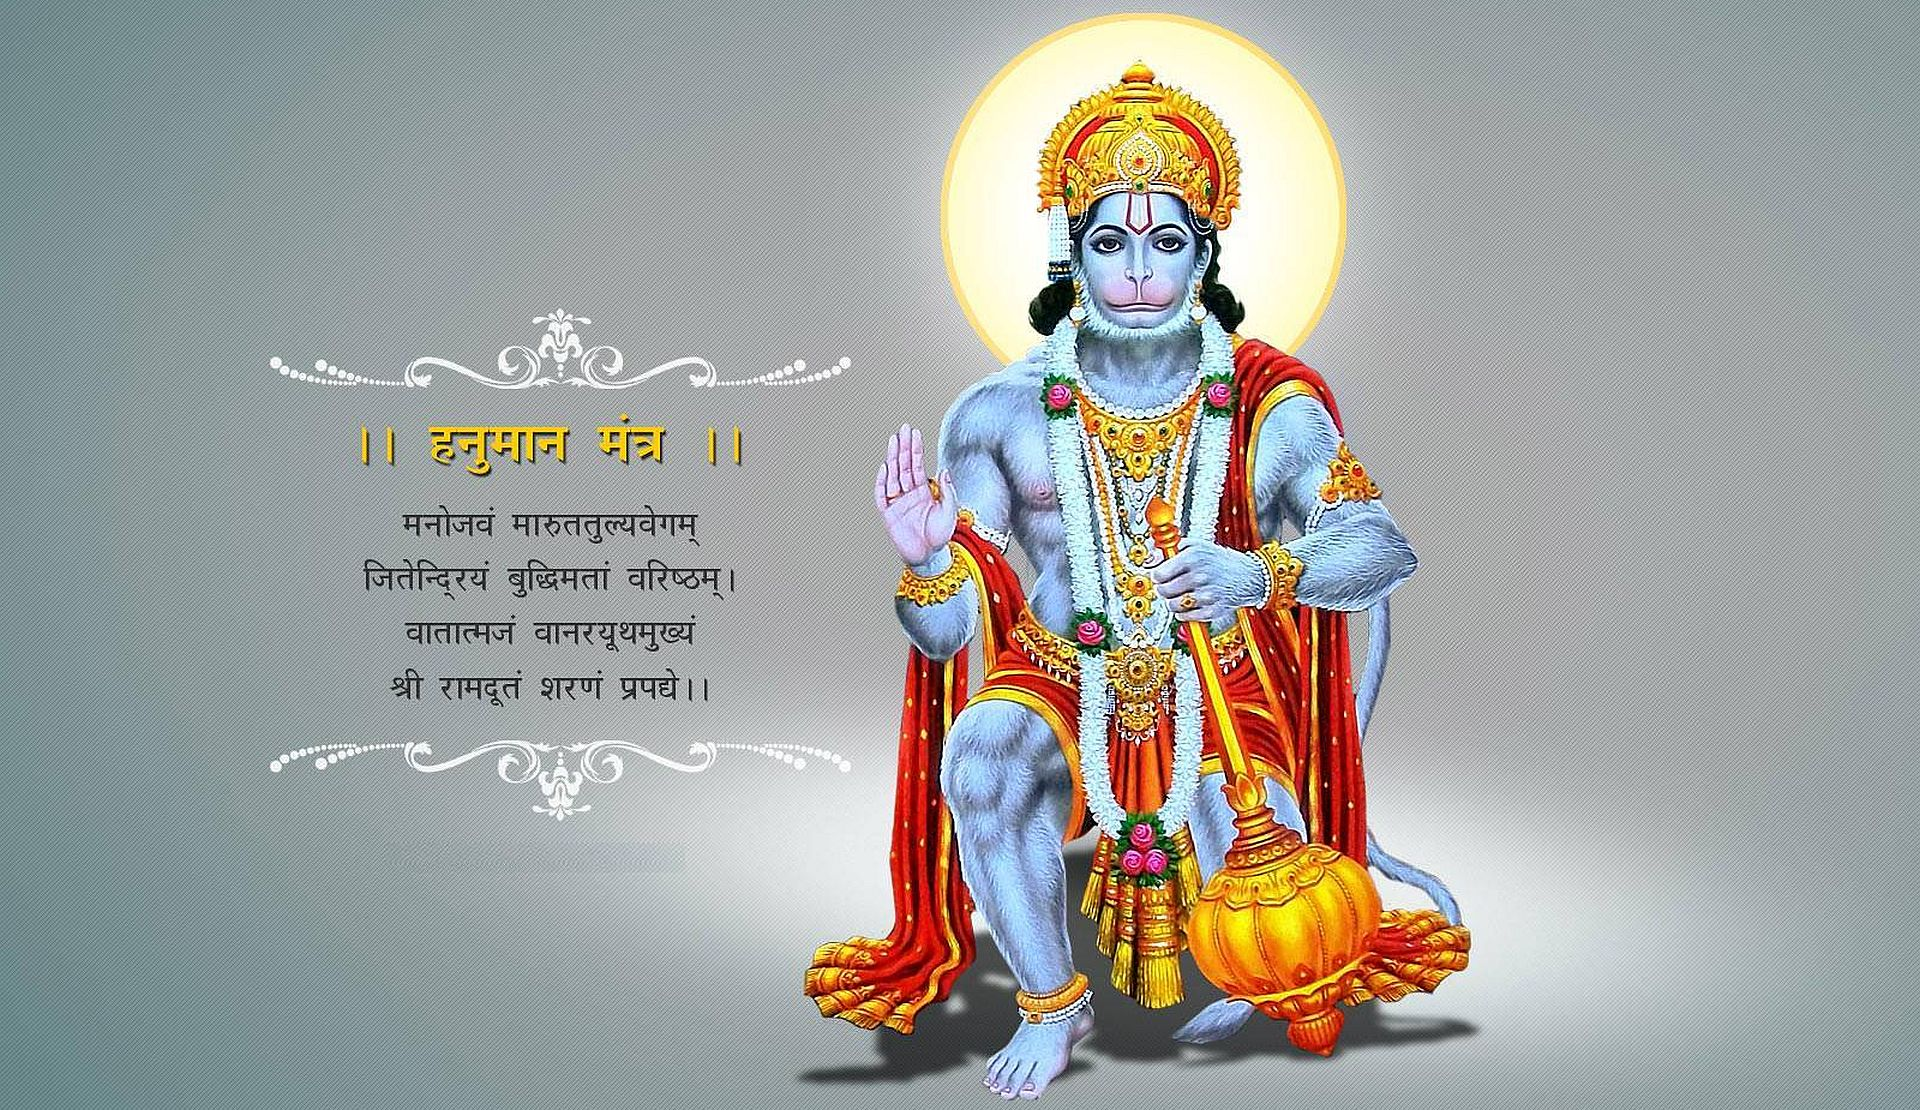 God Hanuman Mantra Wallpaper